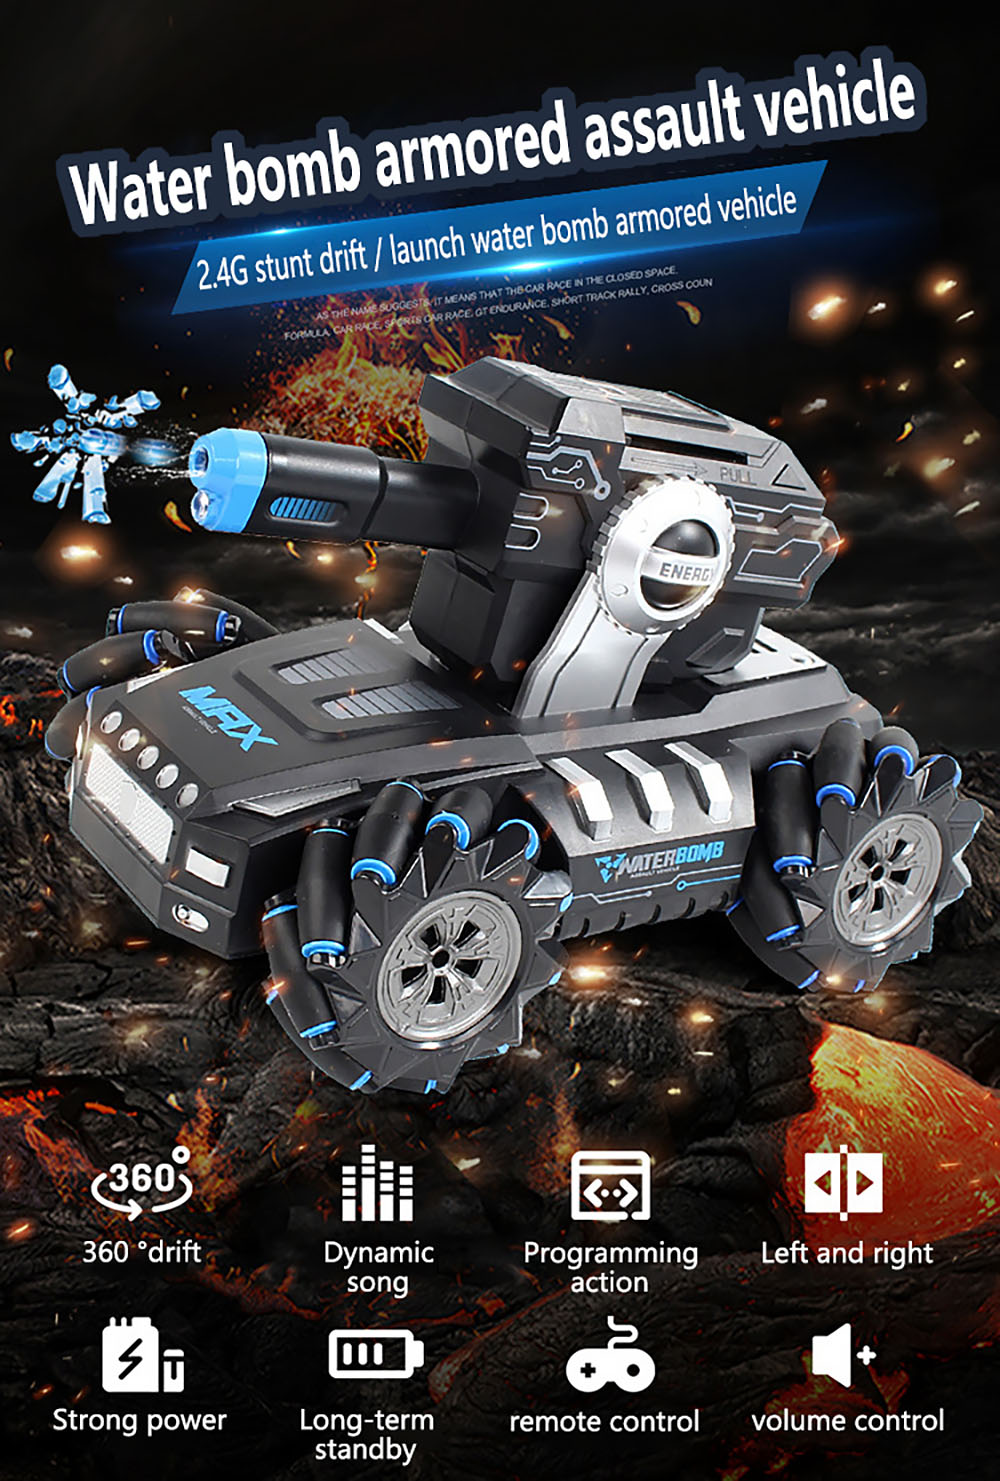 G1 Multi-Function 2.4GHz Wireless Remote Control Water Bomb Stunt Car RC Drift Tank Vehicle Toy - Orange One-handed Controller